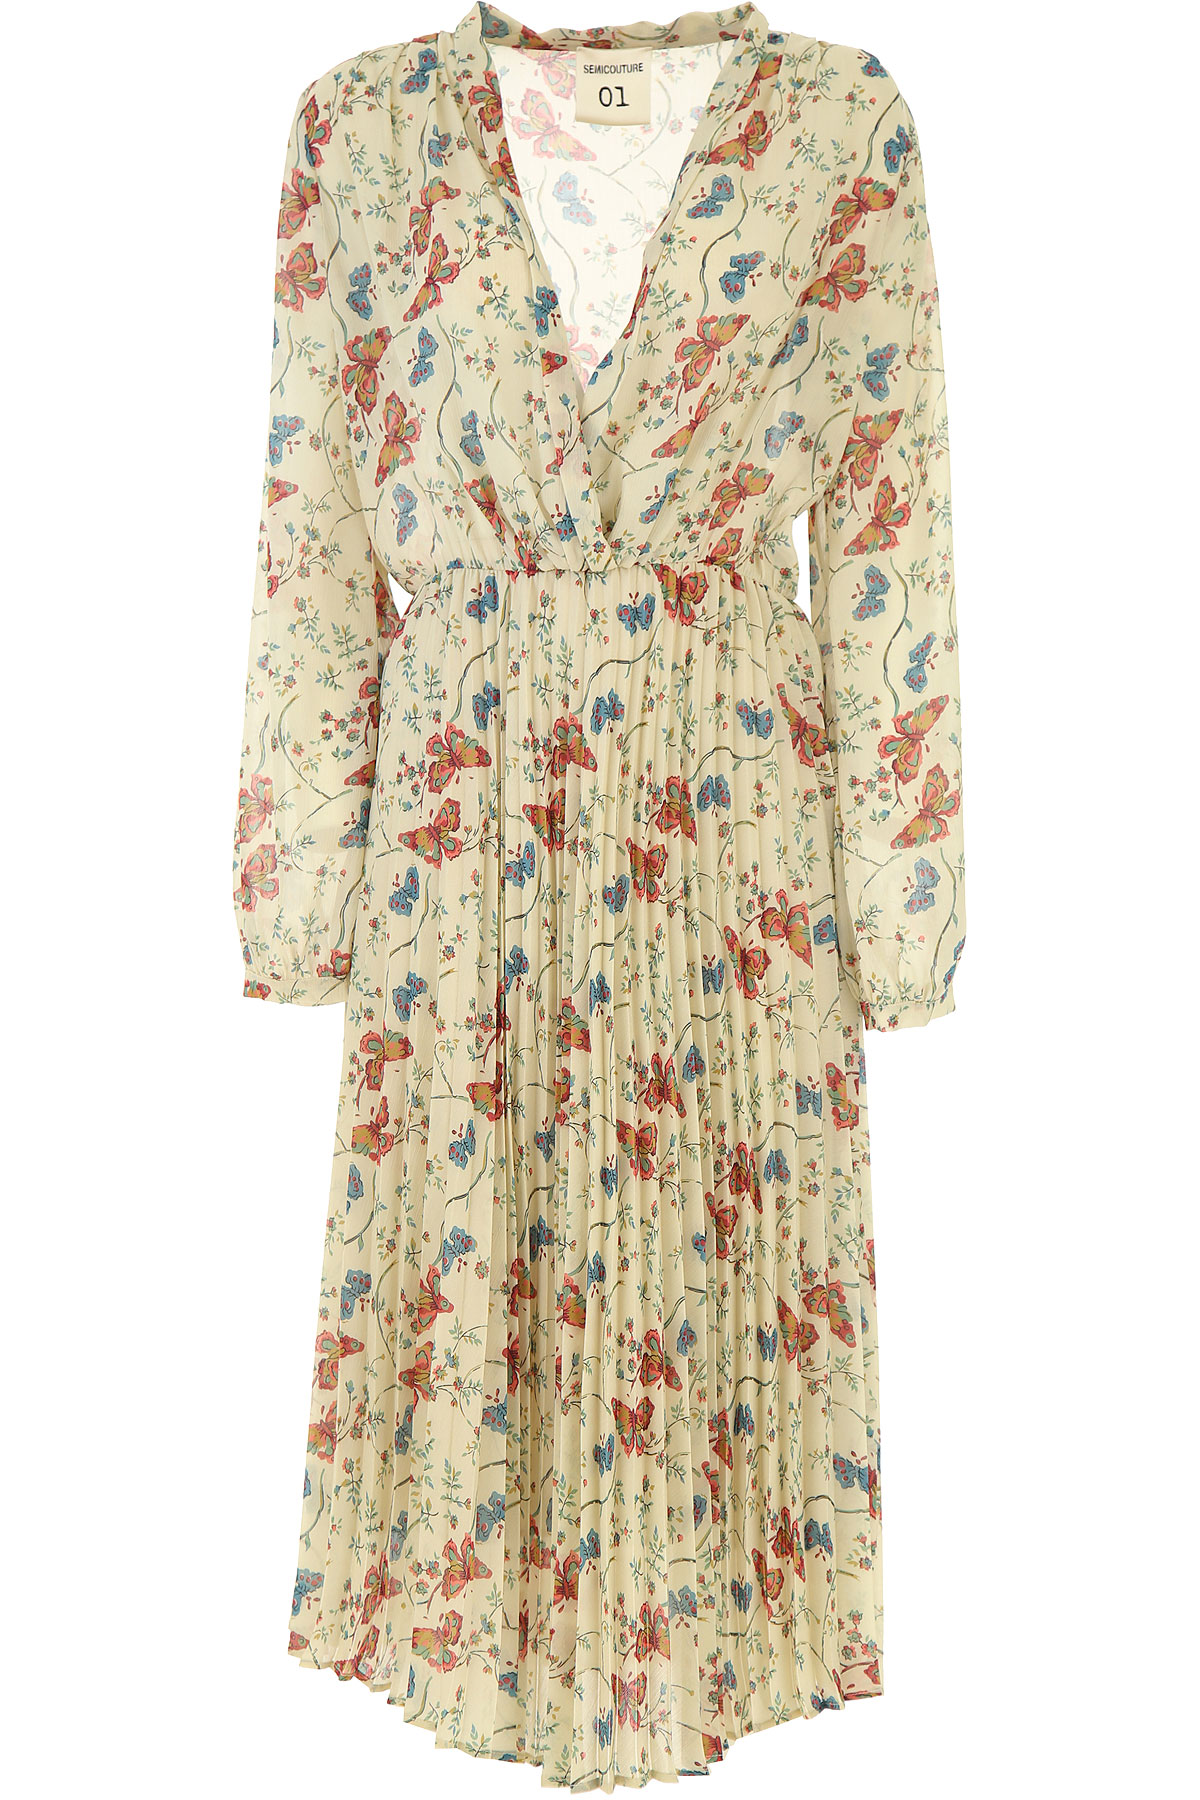 Semicouture Robe Femme, Ivoire, Polyester, 2019, 40 44 M